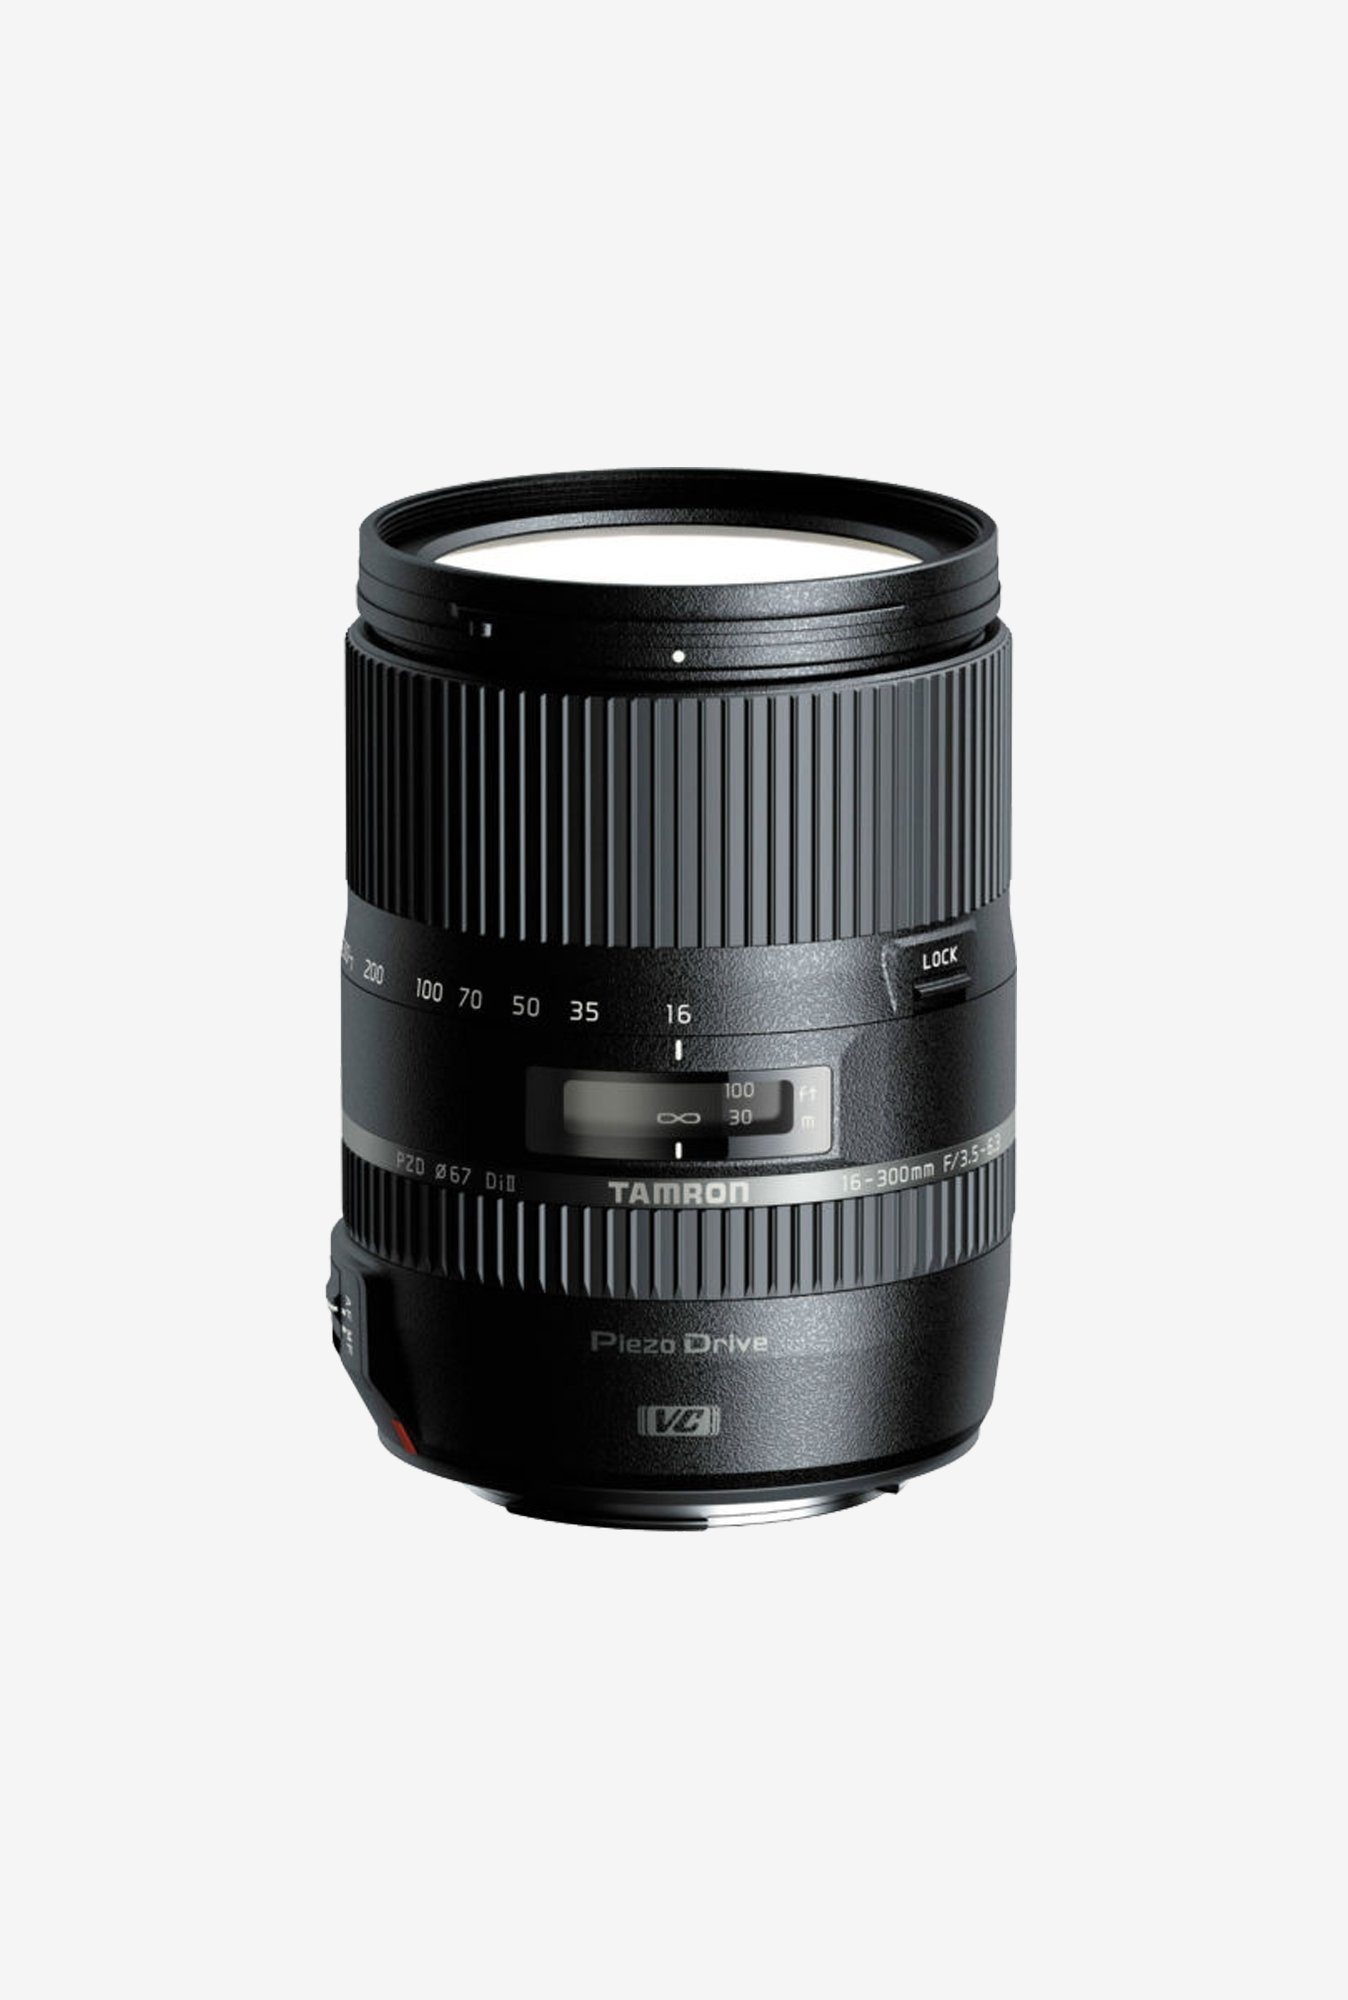 Tamron 16-300mm f/3.5-6.3 Di II VC PZD Lens for Nikon DSLR